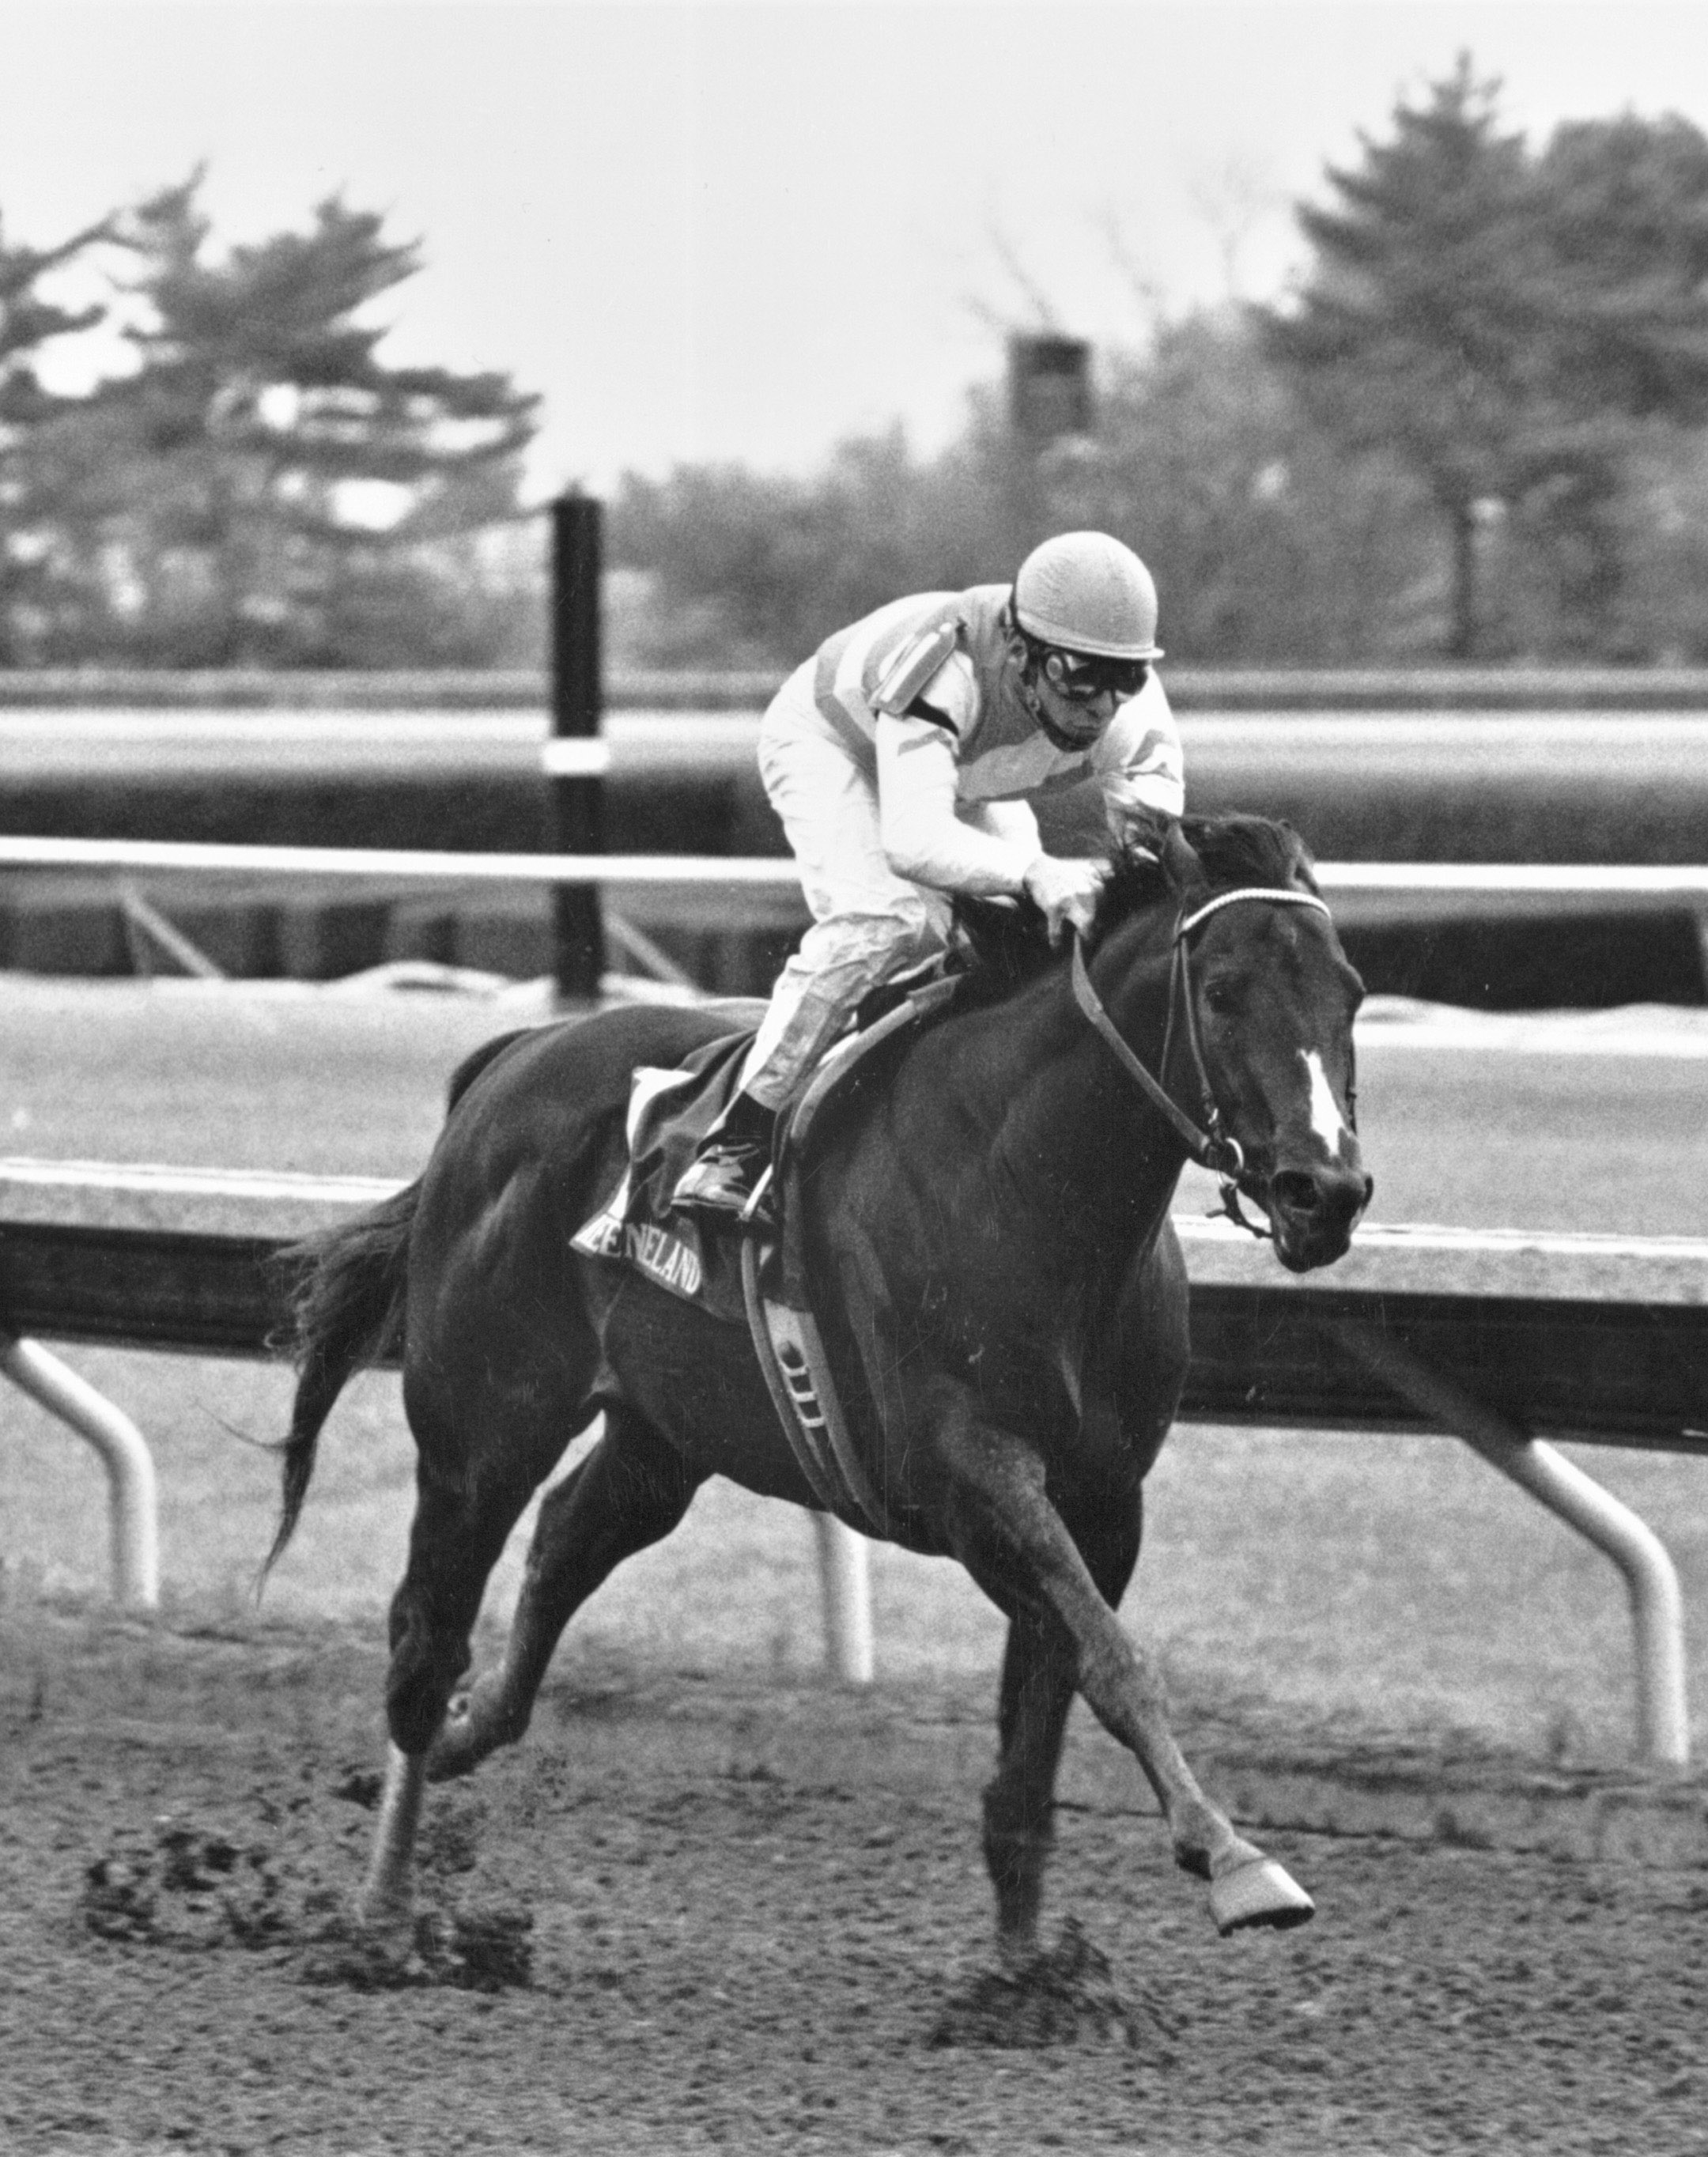 Housebuster (Craig Perret up) racing to victory in the 1990 Lafayette Stakes at Keeneland (Keeneland Association Bill Straus)